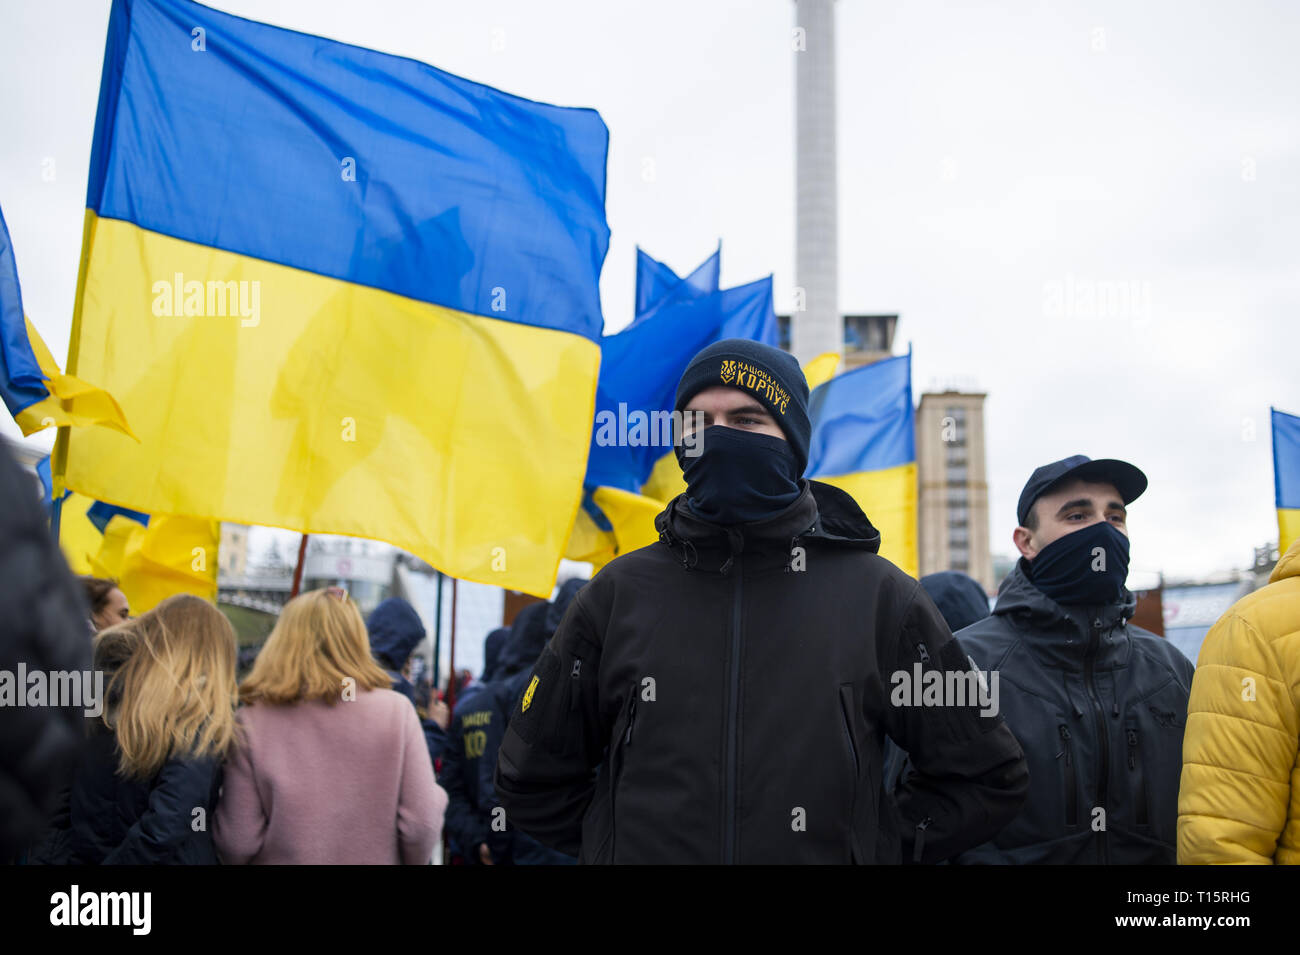 Kyiv, Kyiv Oblast, Ukraine. 23rd Mar, 2019. Protesters seen lined up in Maidan Square to march to the Presidential Administration Building during the demonstration. Protesters gathered in Maidan Square then marched to the Presidential Administration building to call on President Petro Poroshenko to bring corrupt governmental officials to justice. With the Ukrainian Elections being held at the end of March the political tensions run very high. Credit: Matthew Hatcher/SOPA Images/ZUMA Wire/Alamy Live News Stock Photo